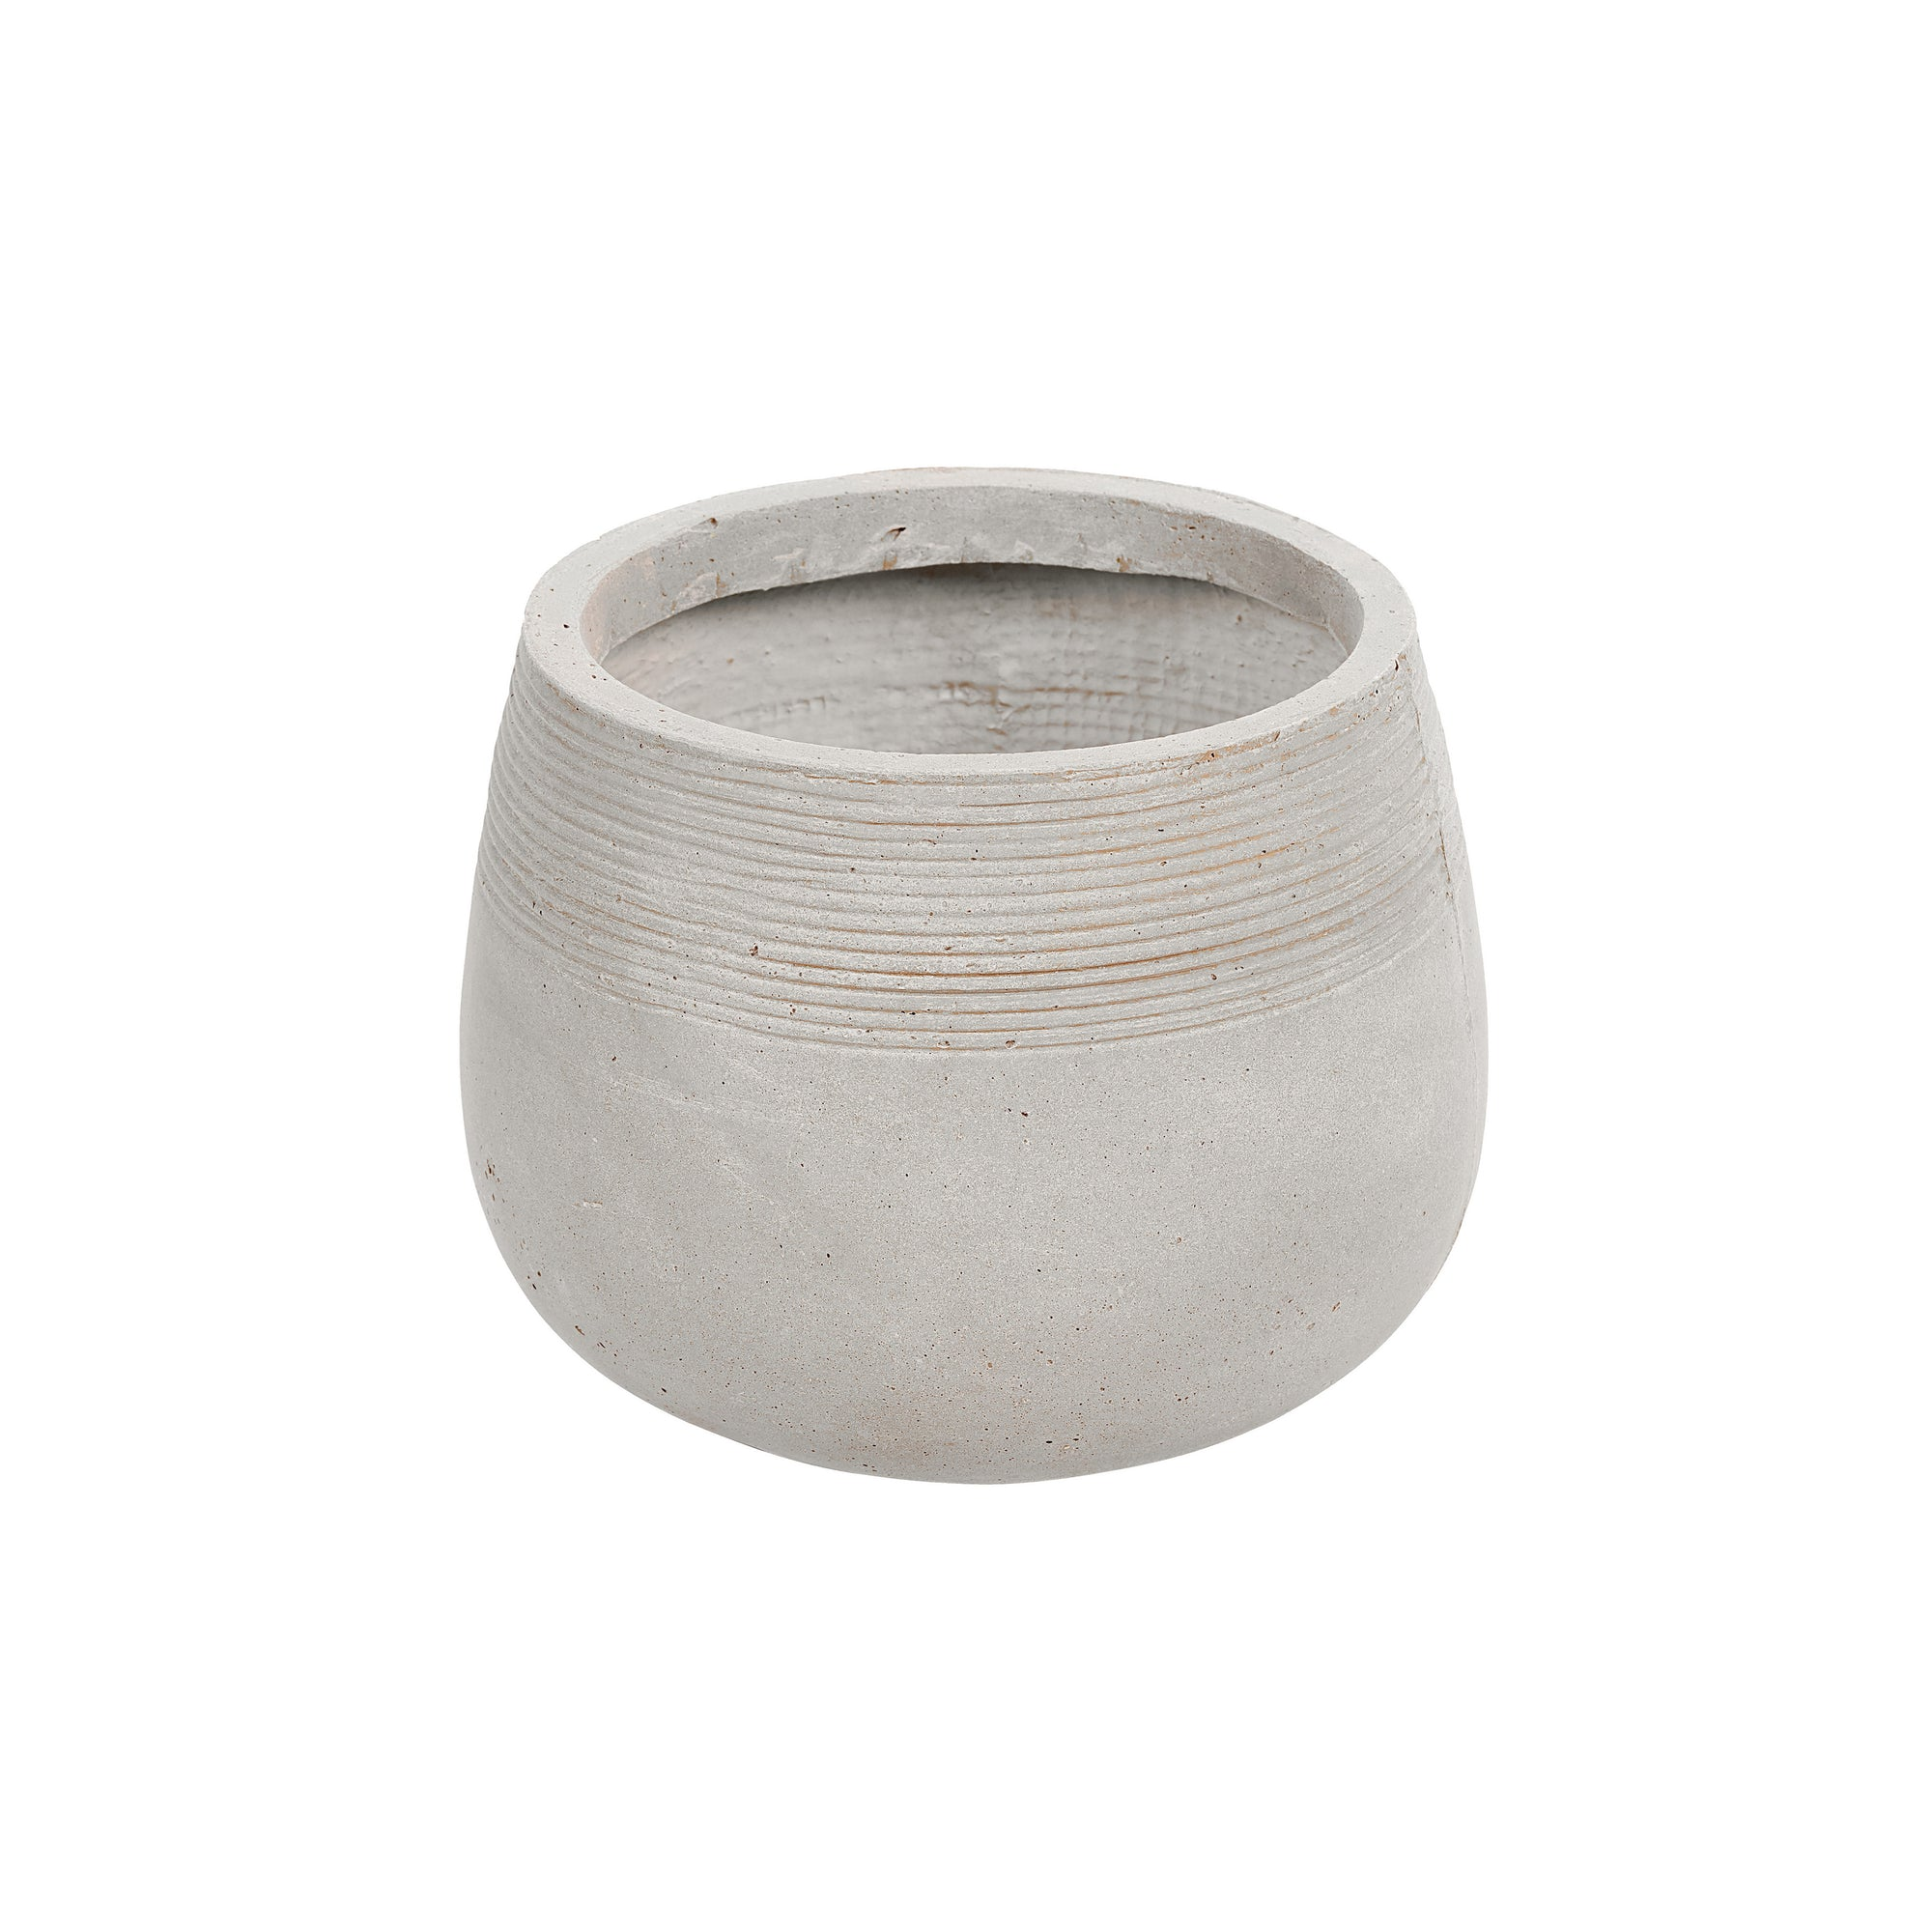 Contemporary round stonecast planter in light grey